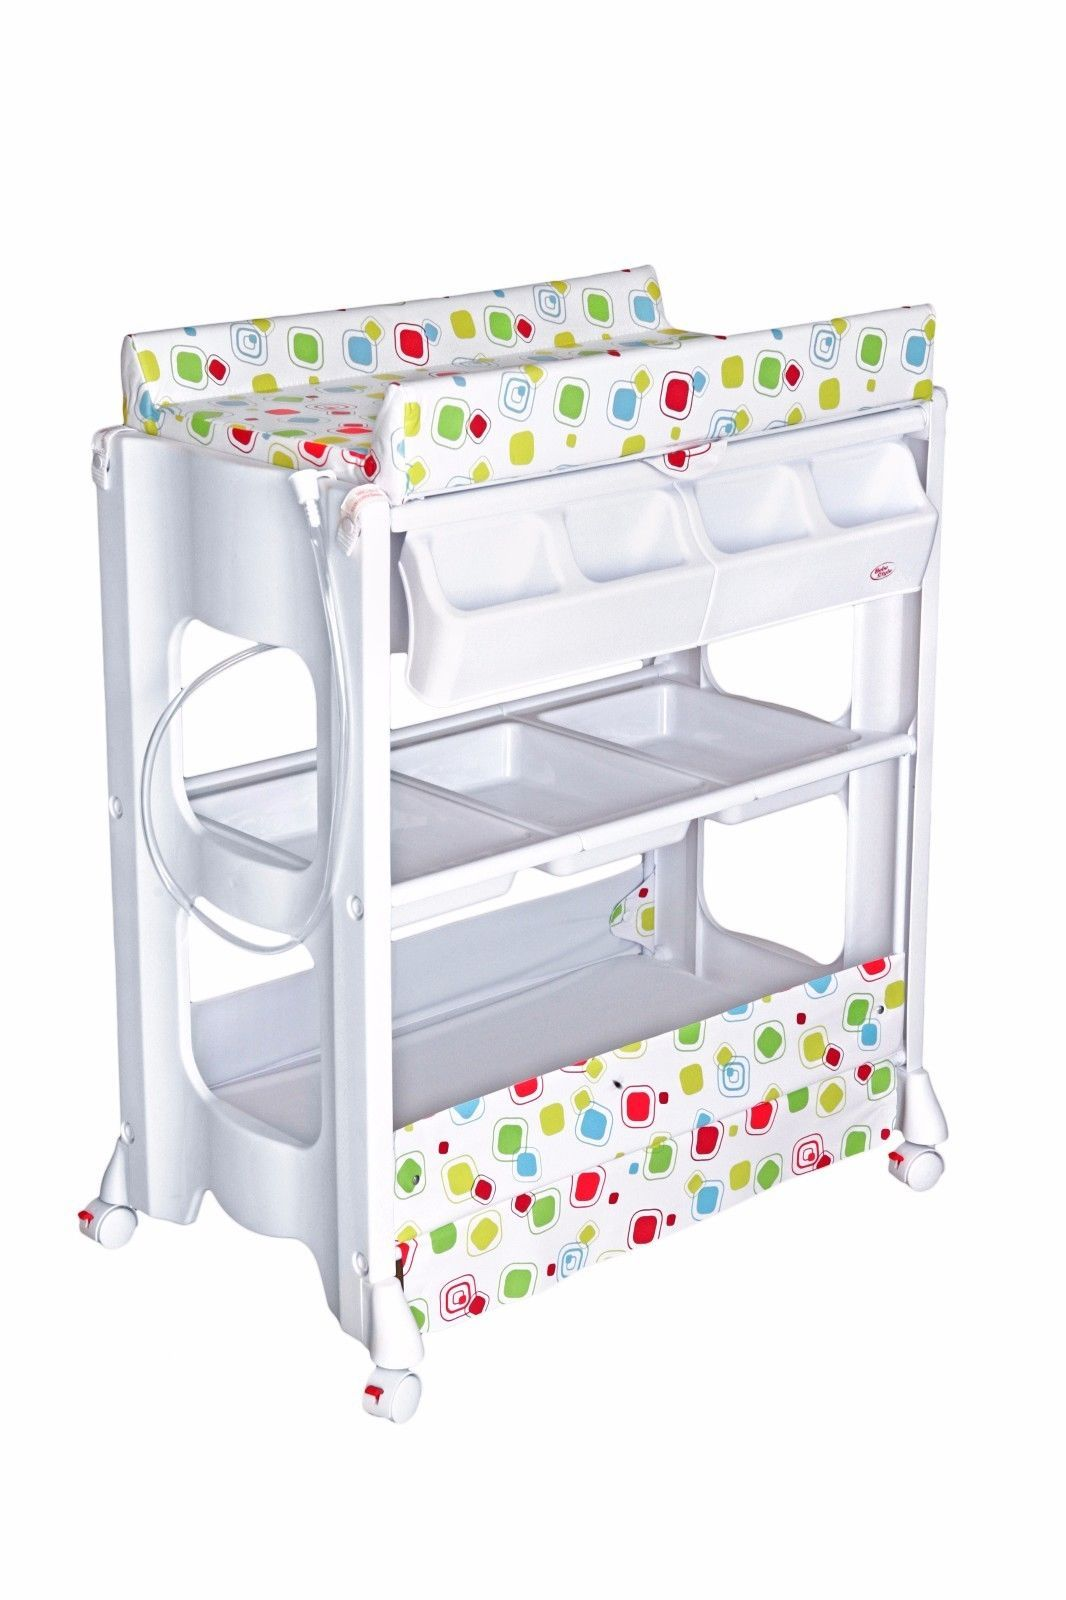 Pin by Zeppy.io on Baby | Pinterest | Baby changer, Baby safe and Babies